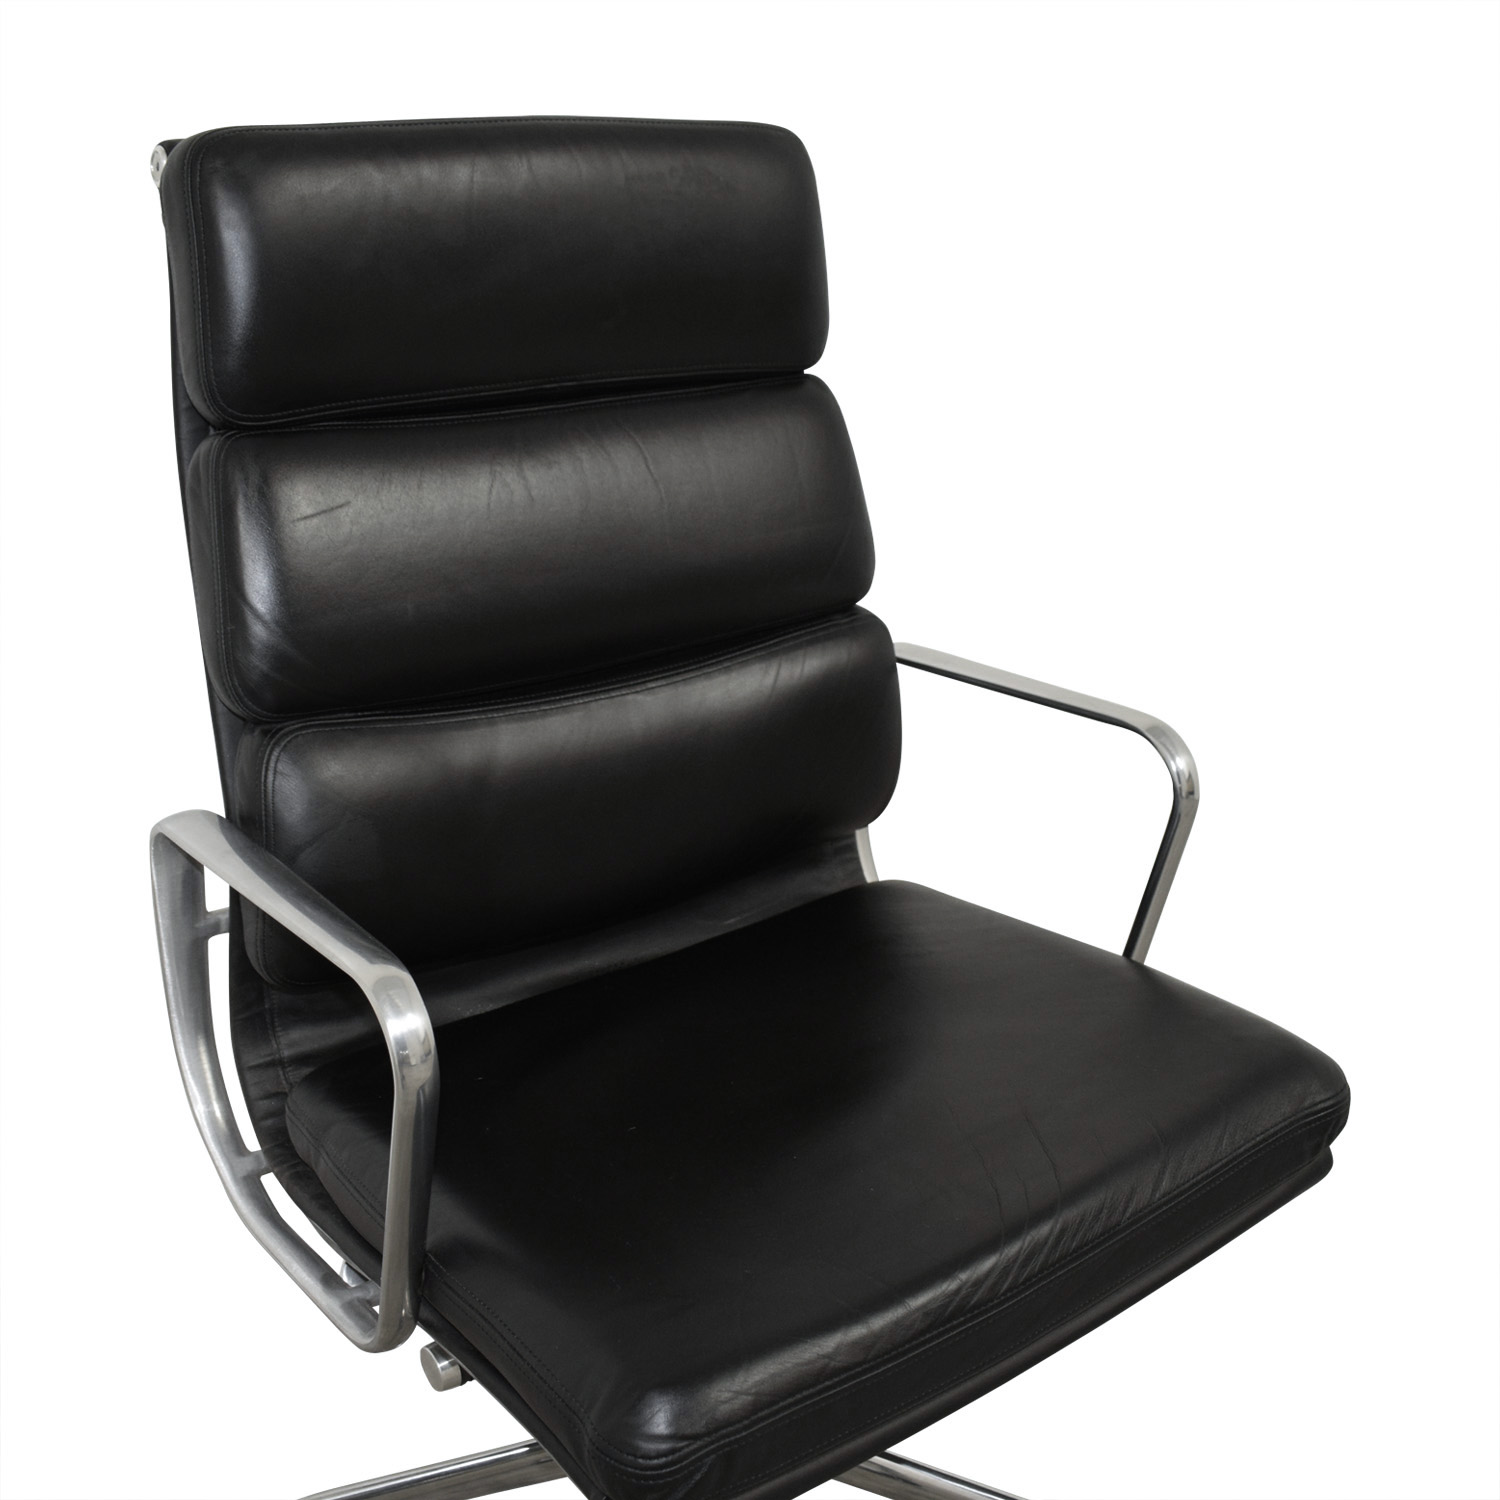 ... Buy Eames Softpad Executive Black Leather Chair Online